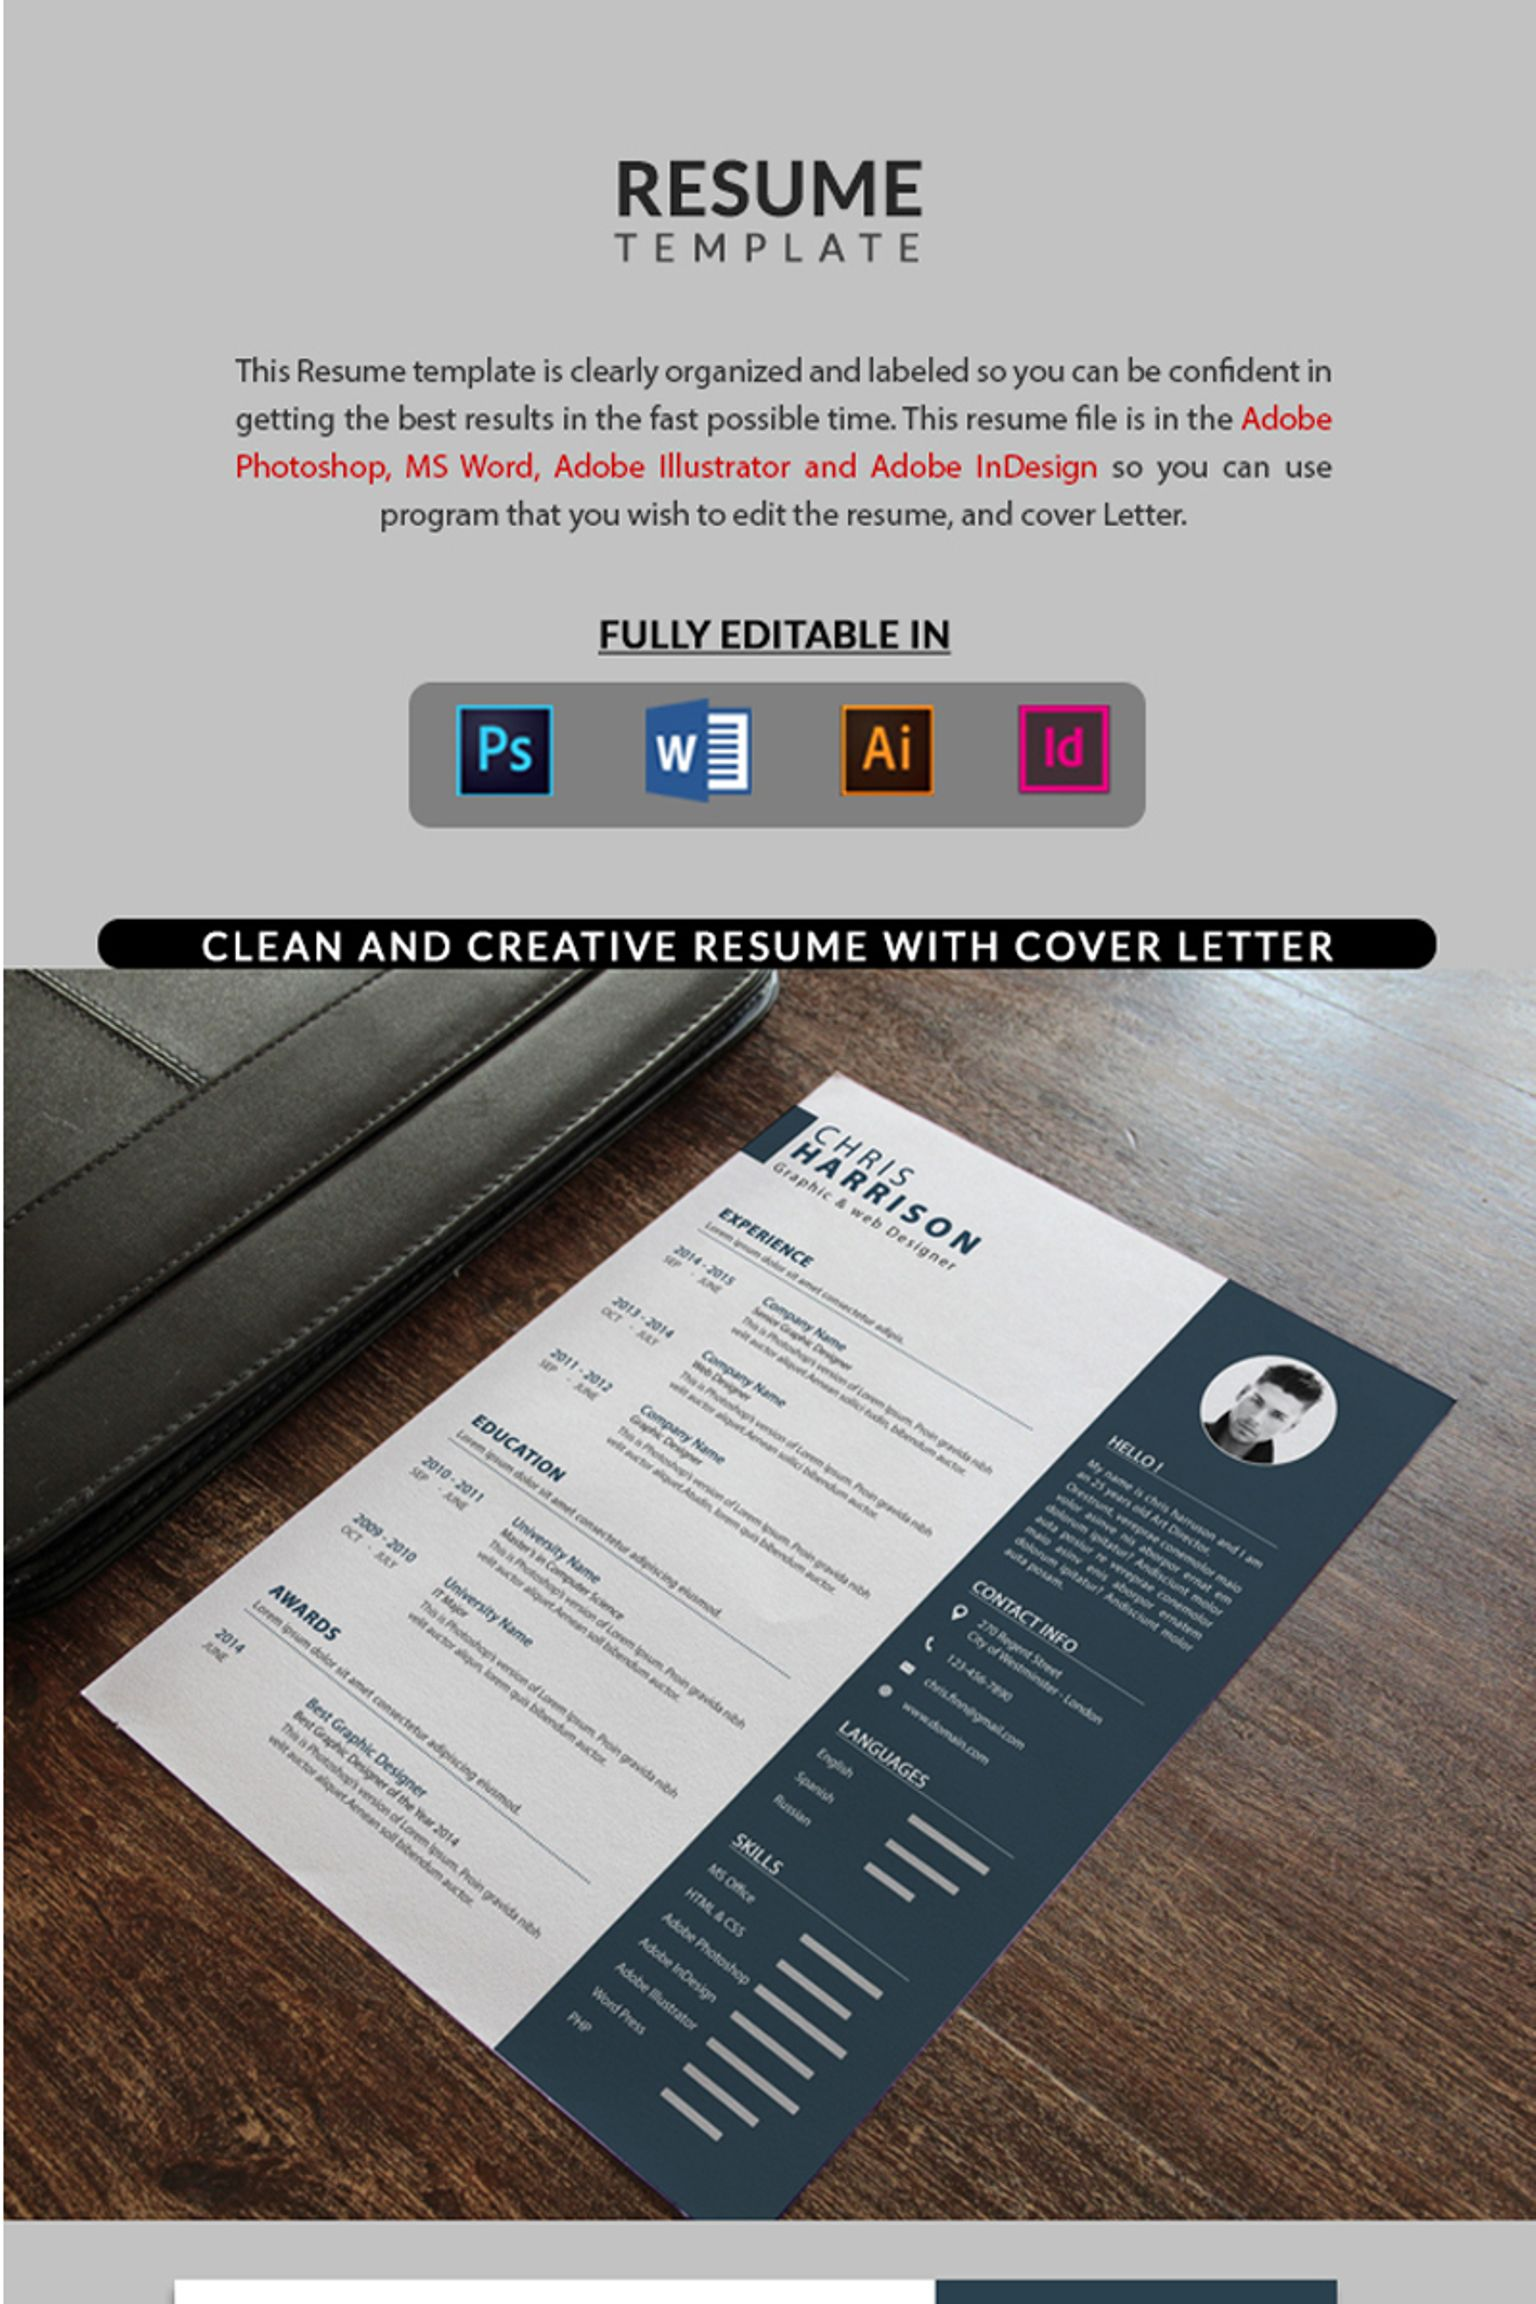 Chris Harrison - Graphic Designer Resume Template #67276